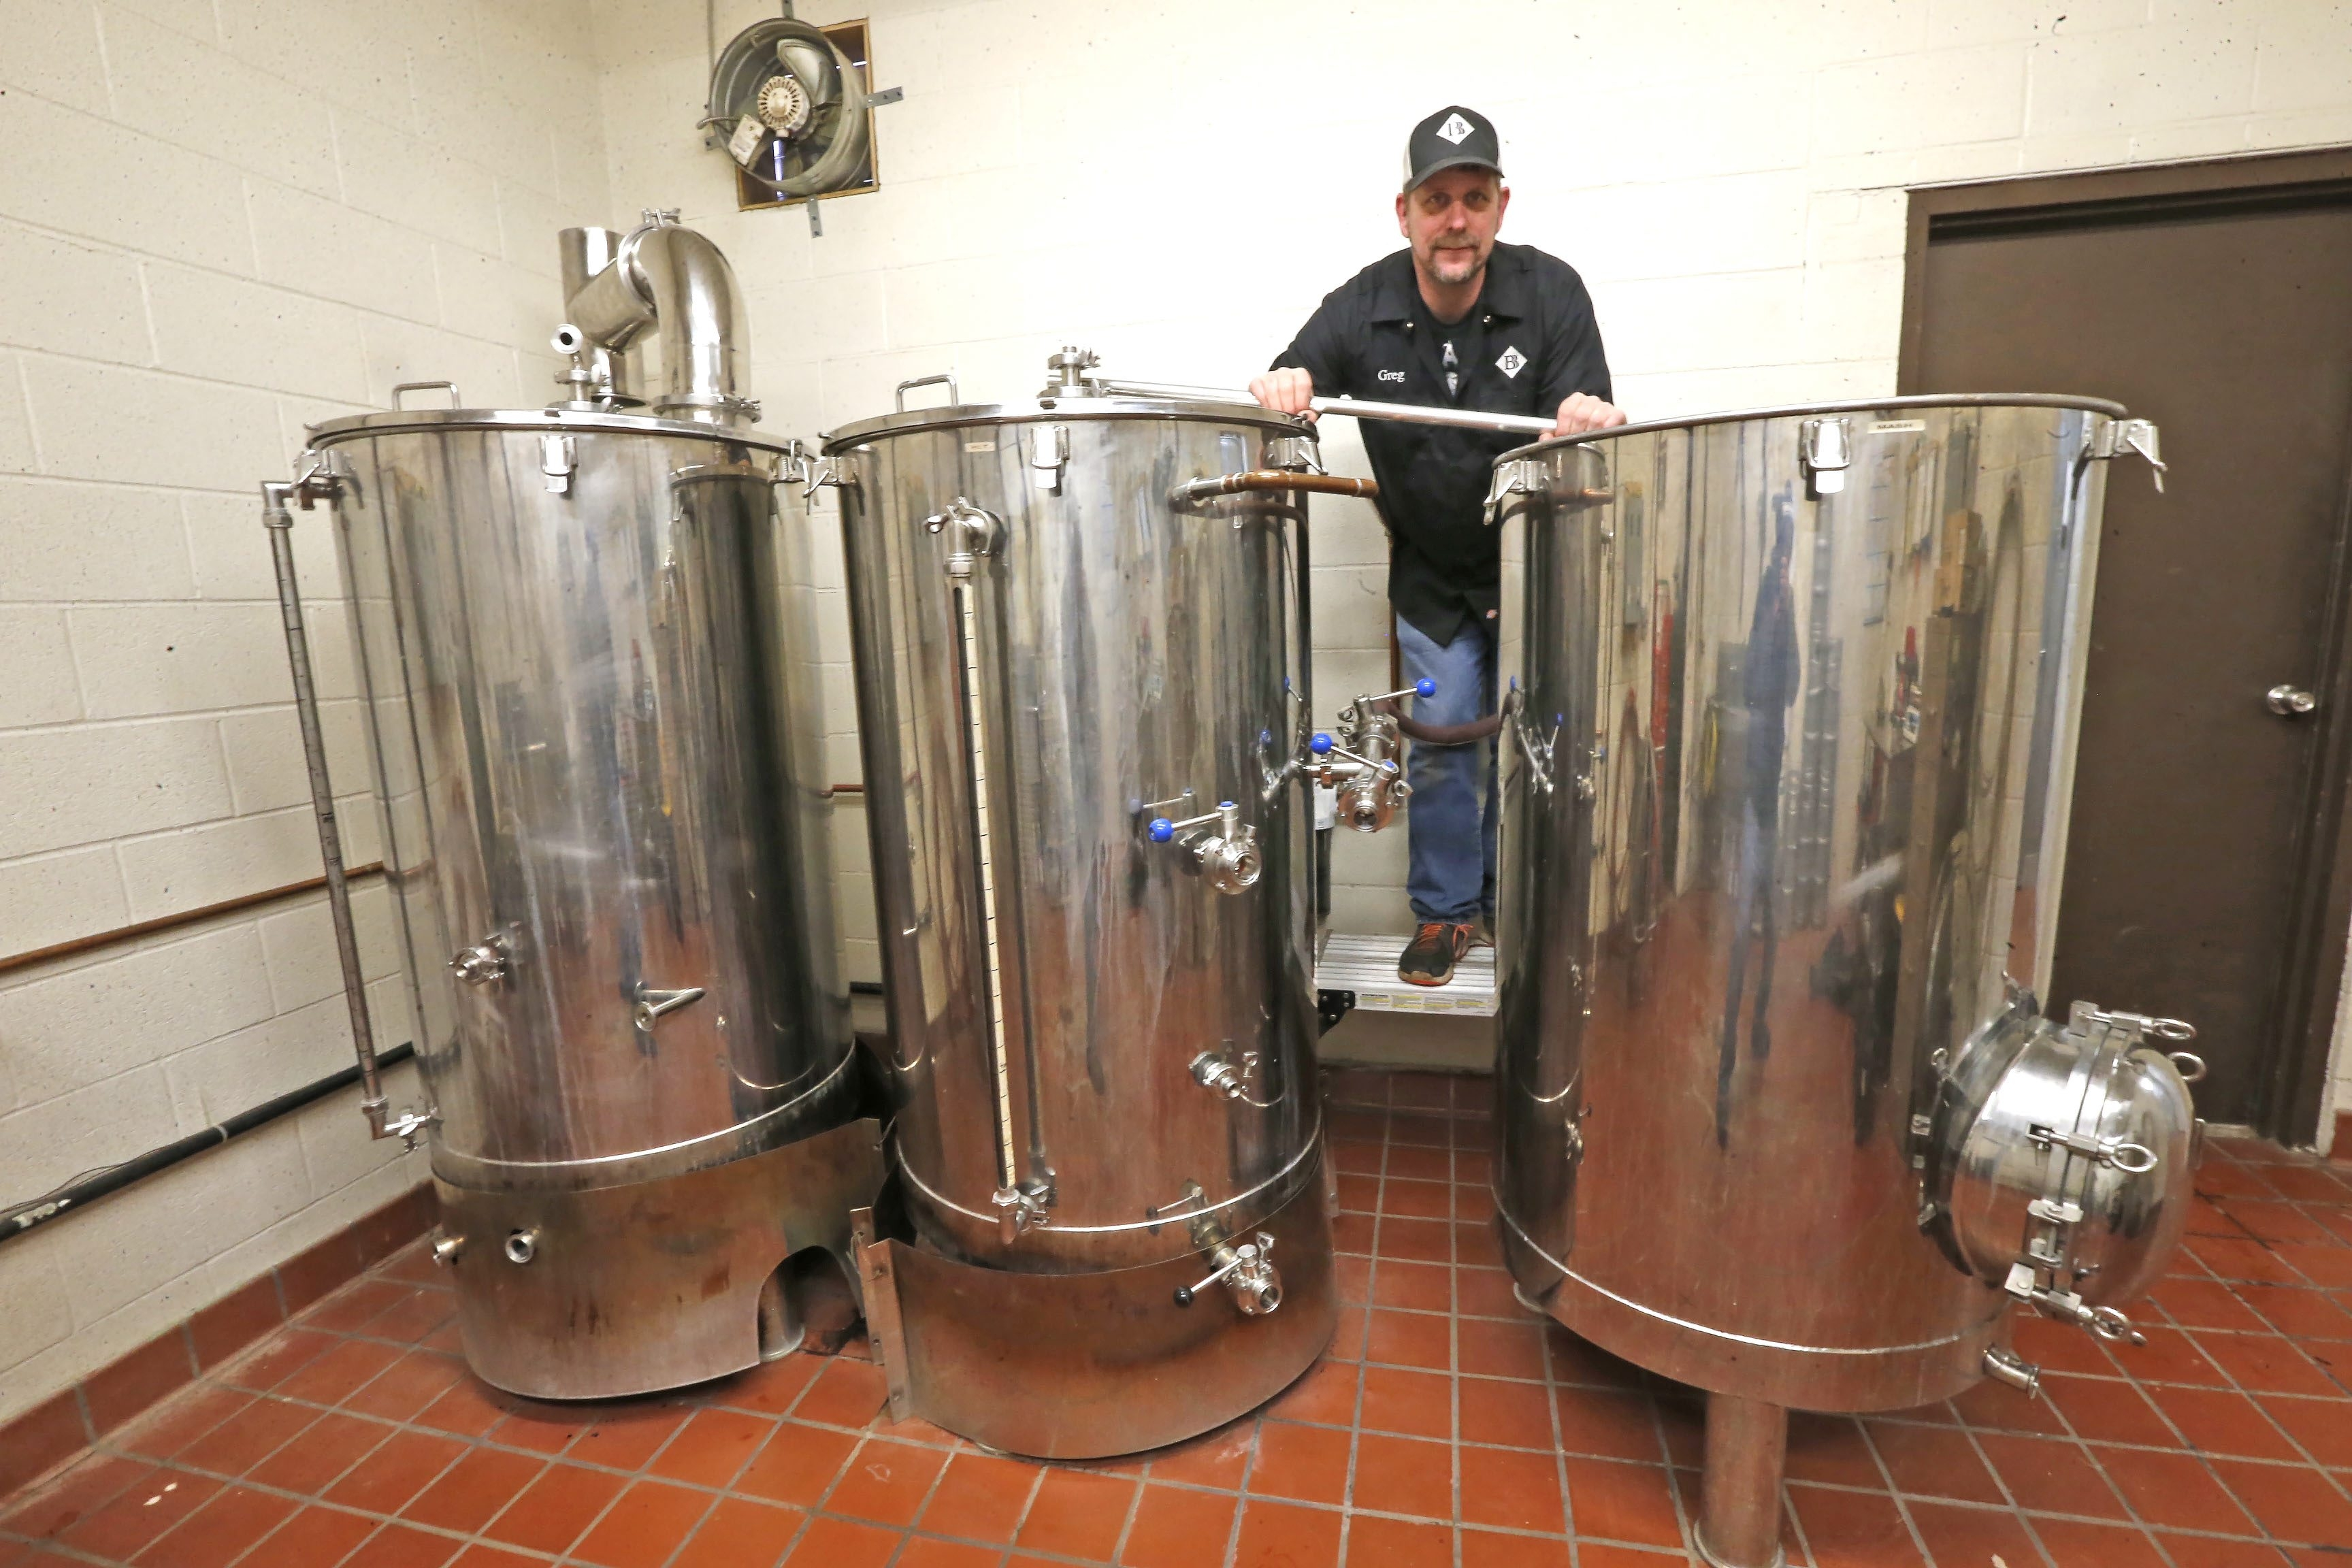 Barker Brewing owner Greg Goodlander is eager to get started on an expansion since he's running out of room and can't keep up with the demand. He recently signed a purchase agreement with Village of Barker to buy more of the former Birds Eye site.